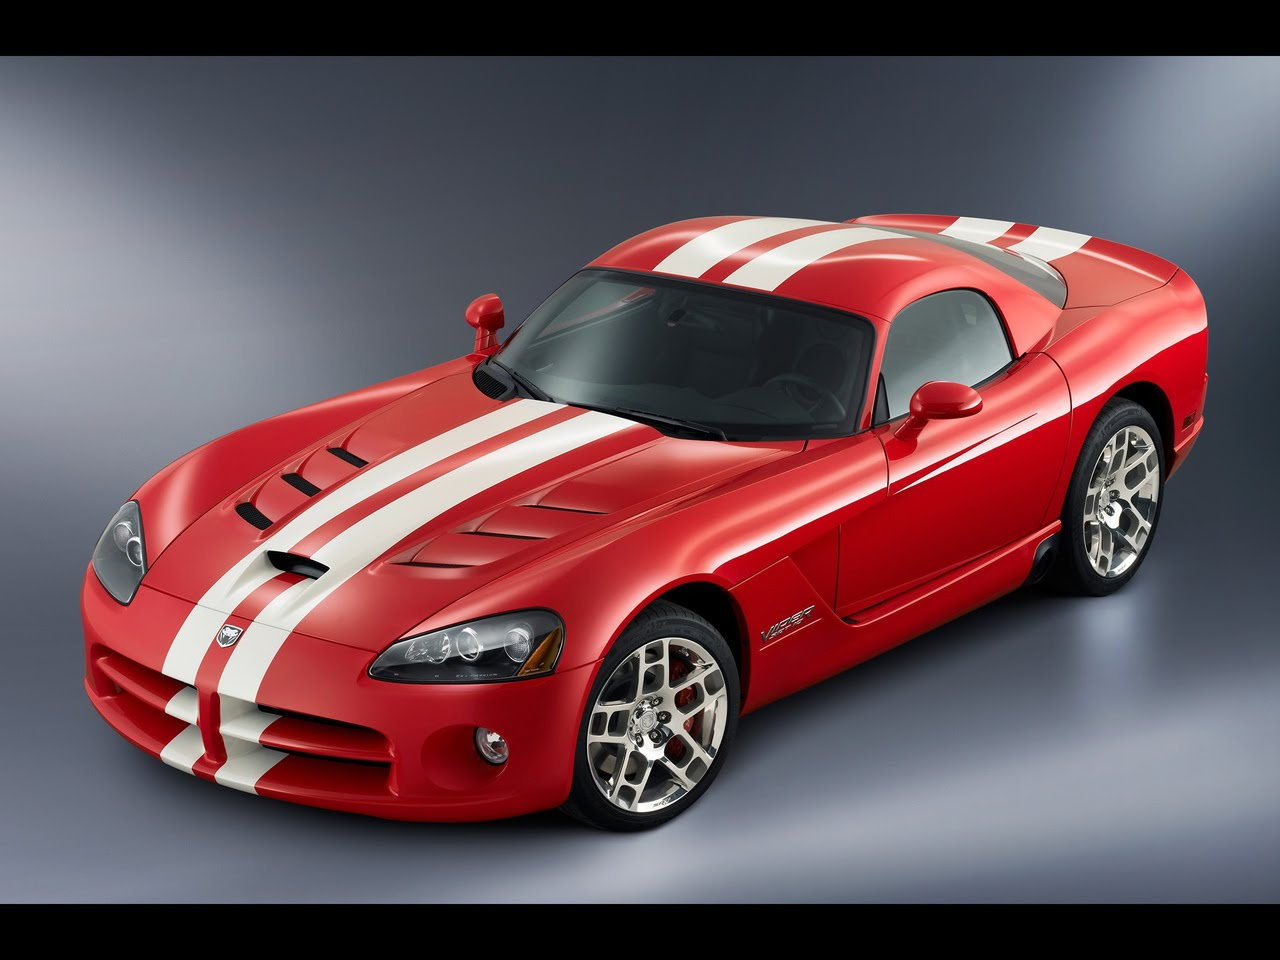 zsports cars fastest cars 0 to 60 mph. Black Bedroom Furniture Sets. Home Design Ideas